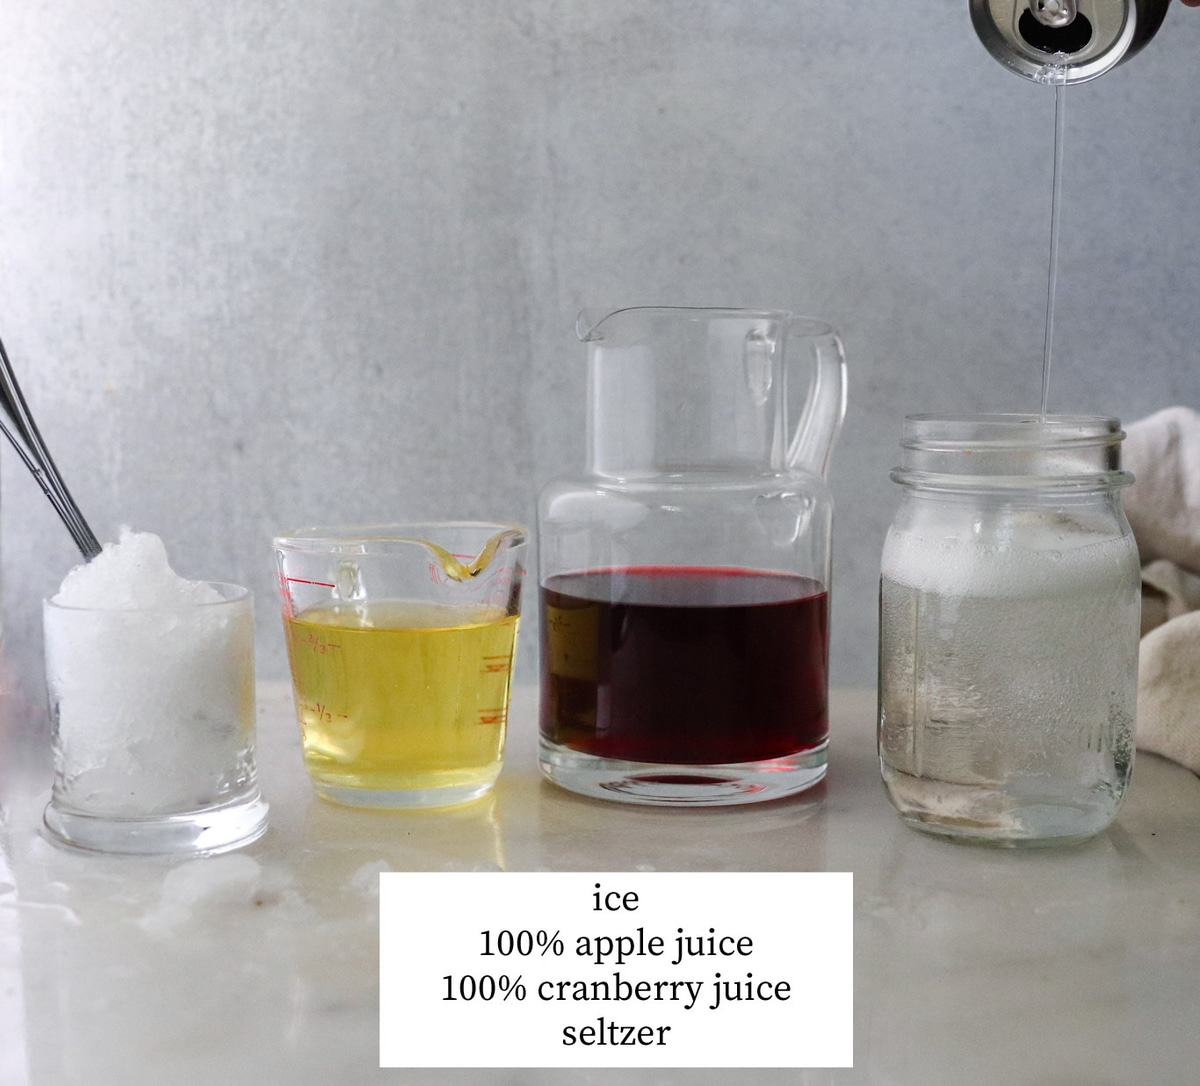 All the ingredients needed: Ice, apple juice, cranberry juice, and seltzer, each in individual glasses and labeled.